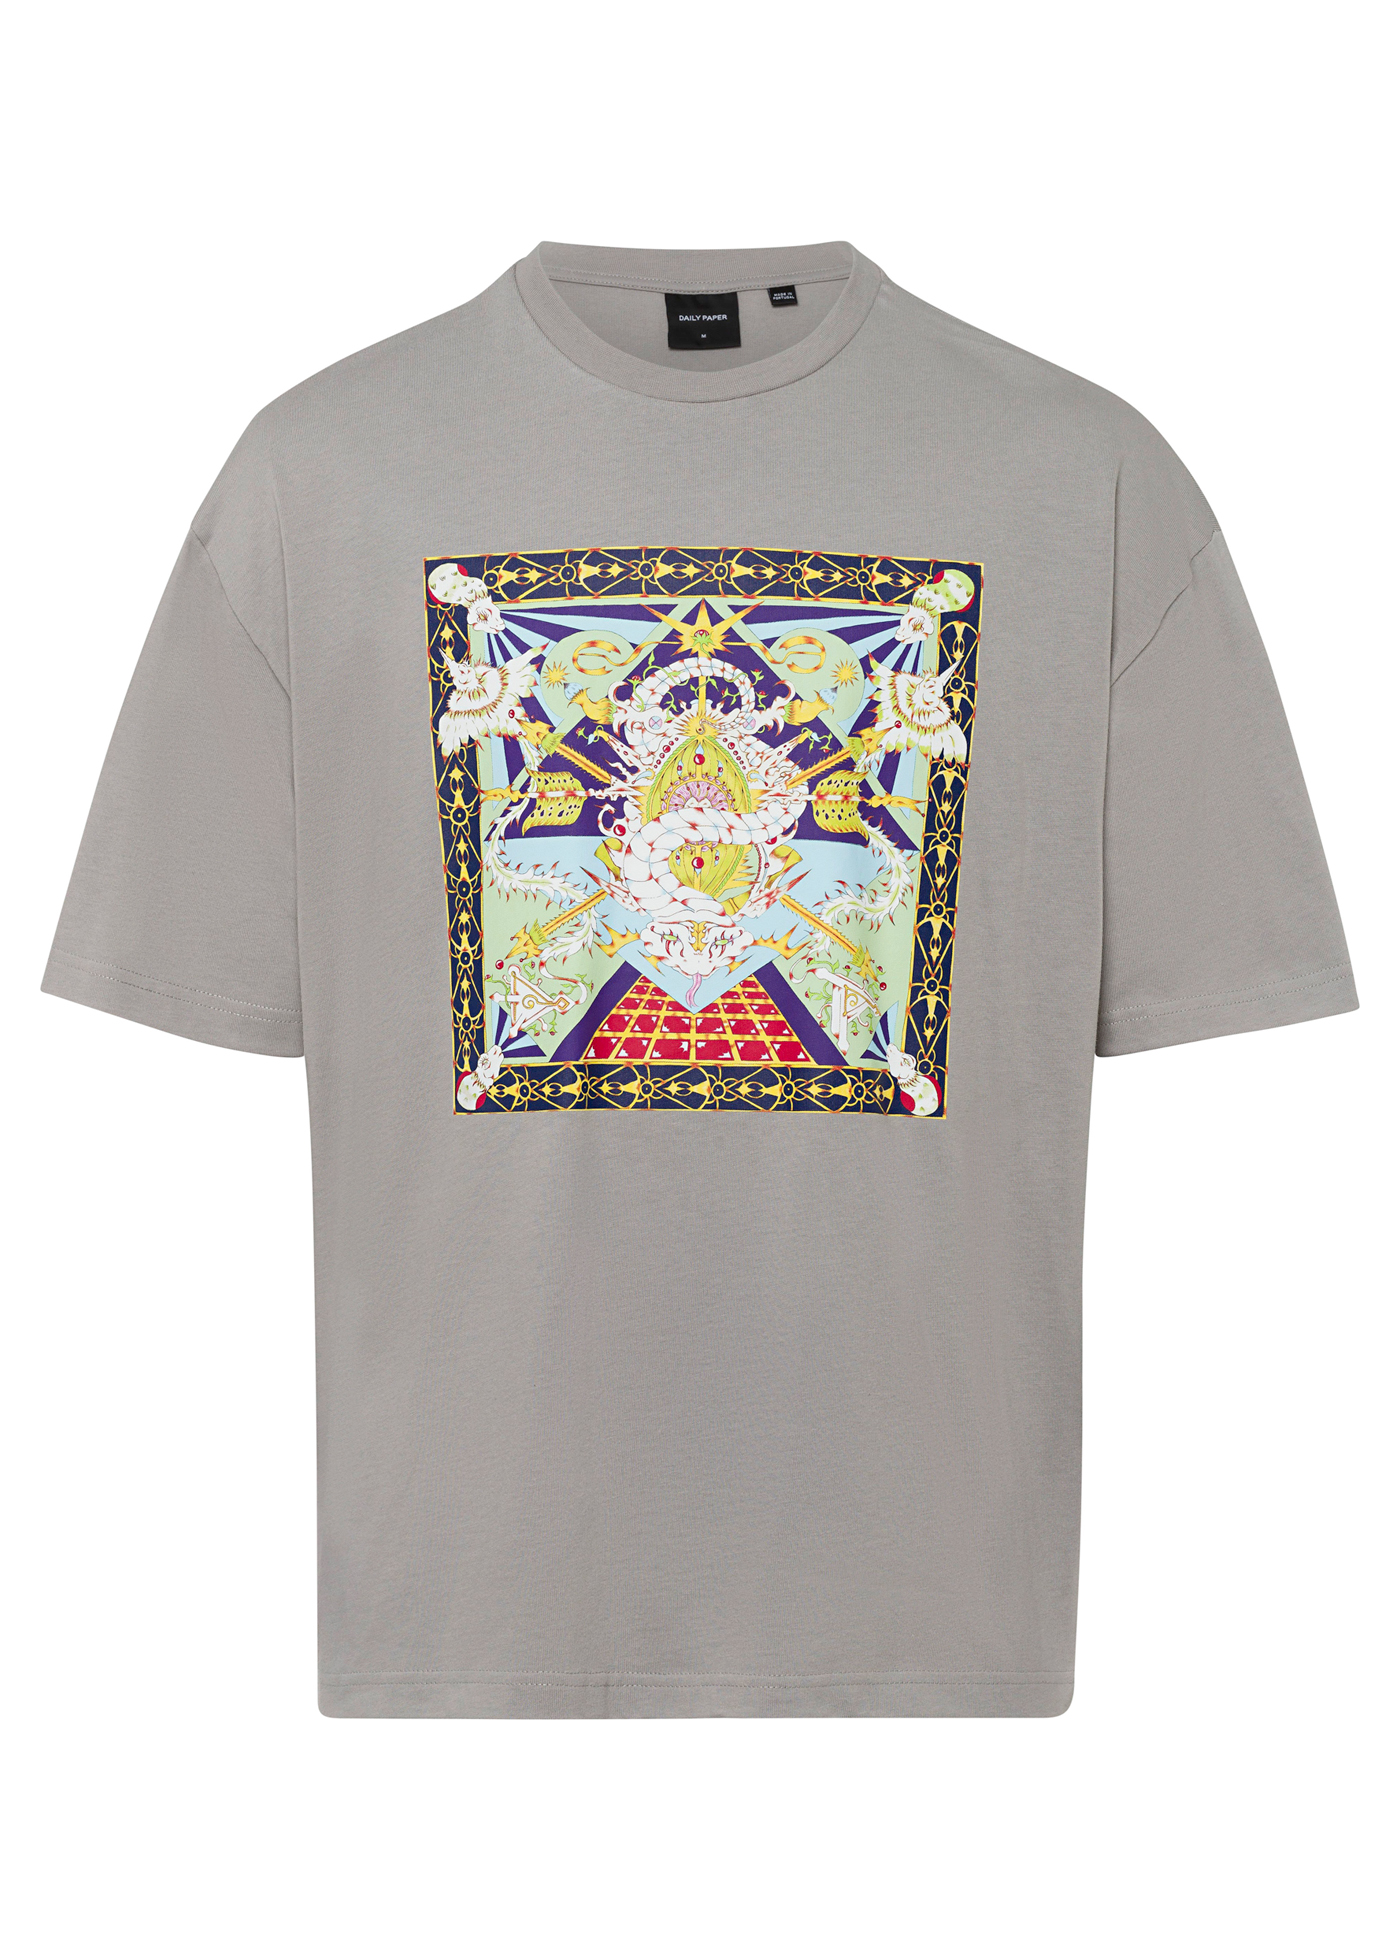 leval ss t-shirt image number 0